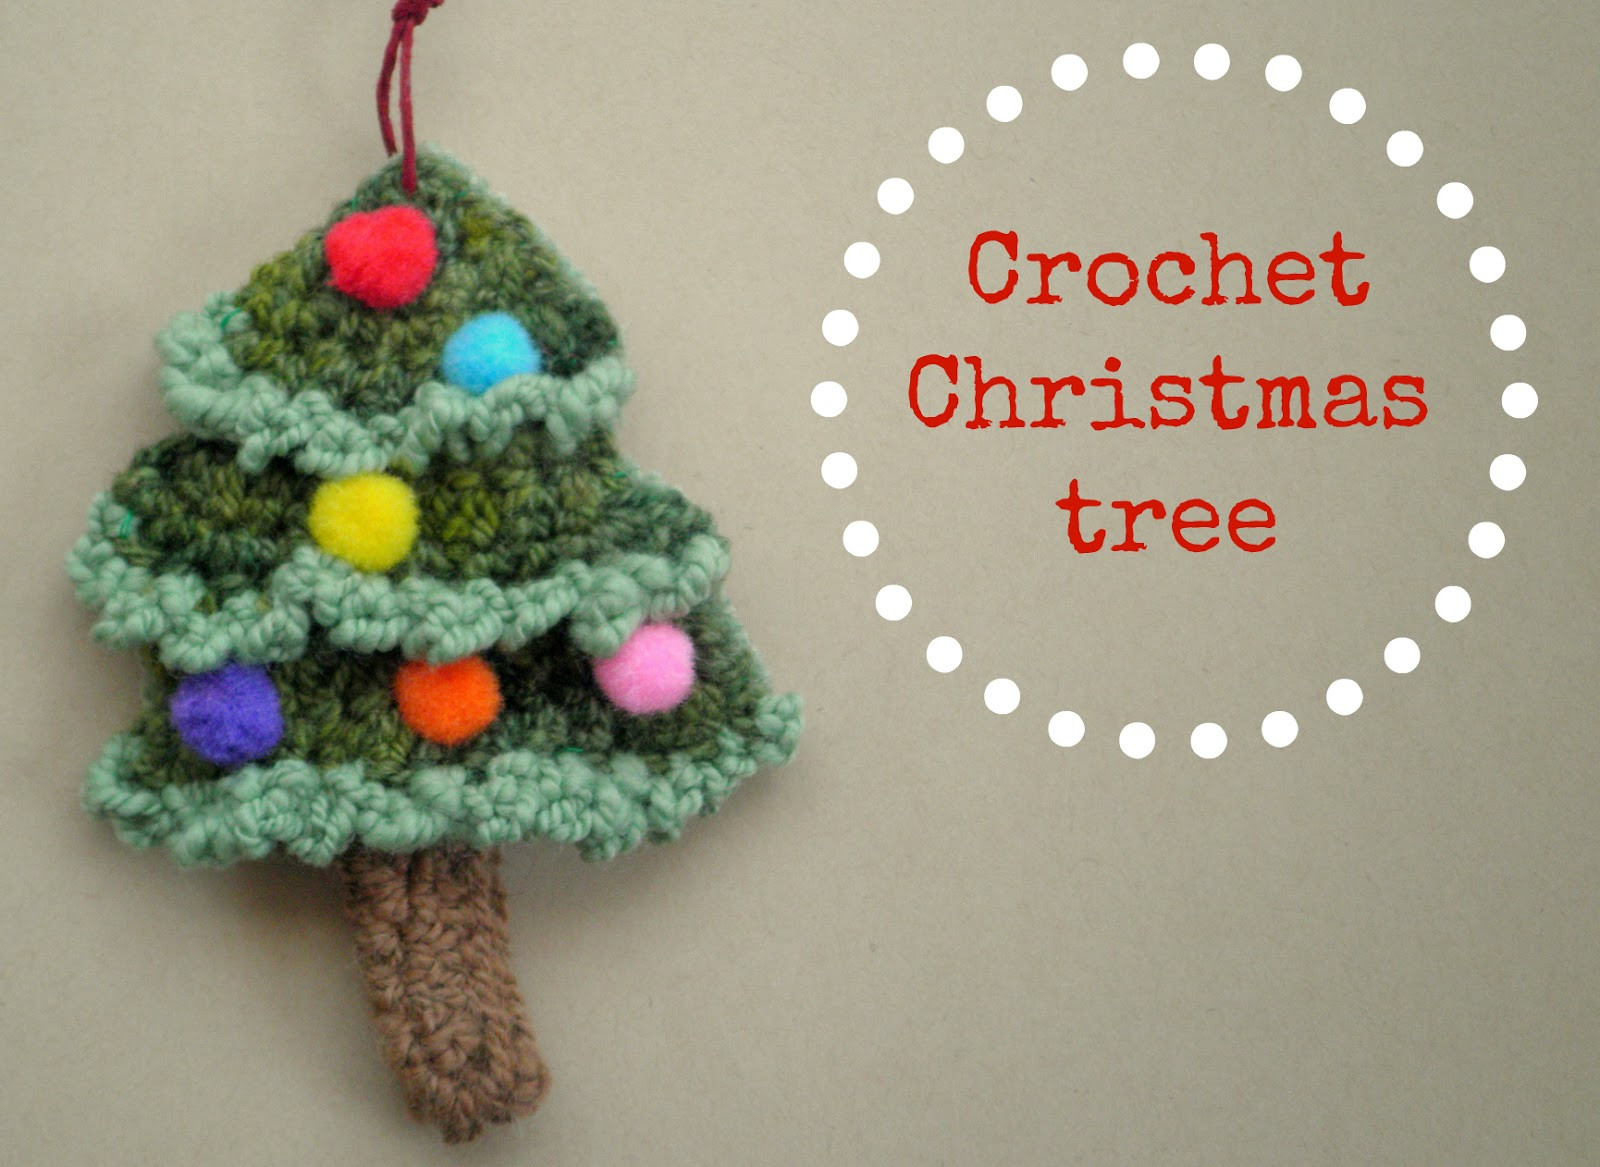 Luxury Nz Green buttons Crochet A Christmas Tree Crochet Christmas Trees Of Marvelous 46 Ideas Crochet Christmas Trees